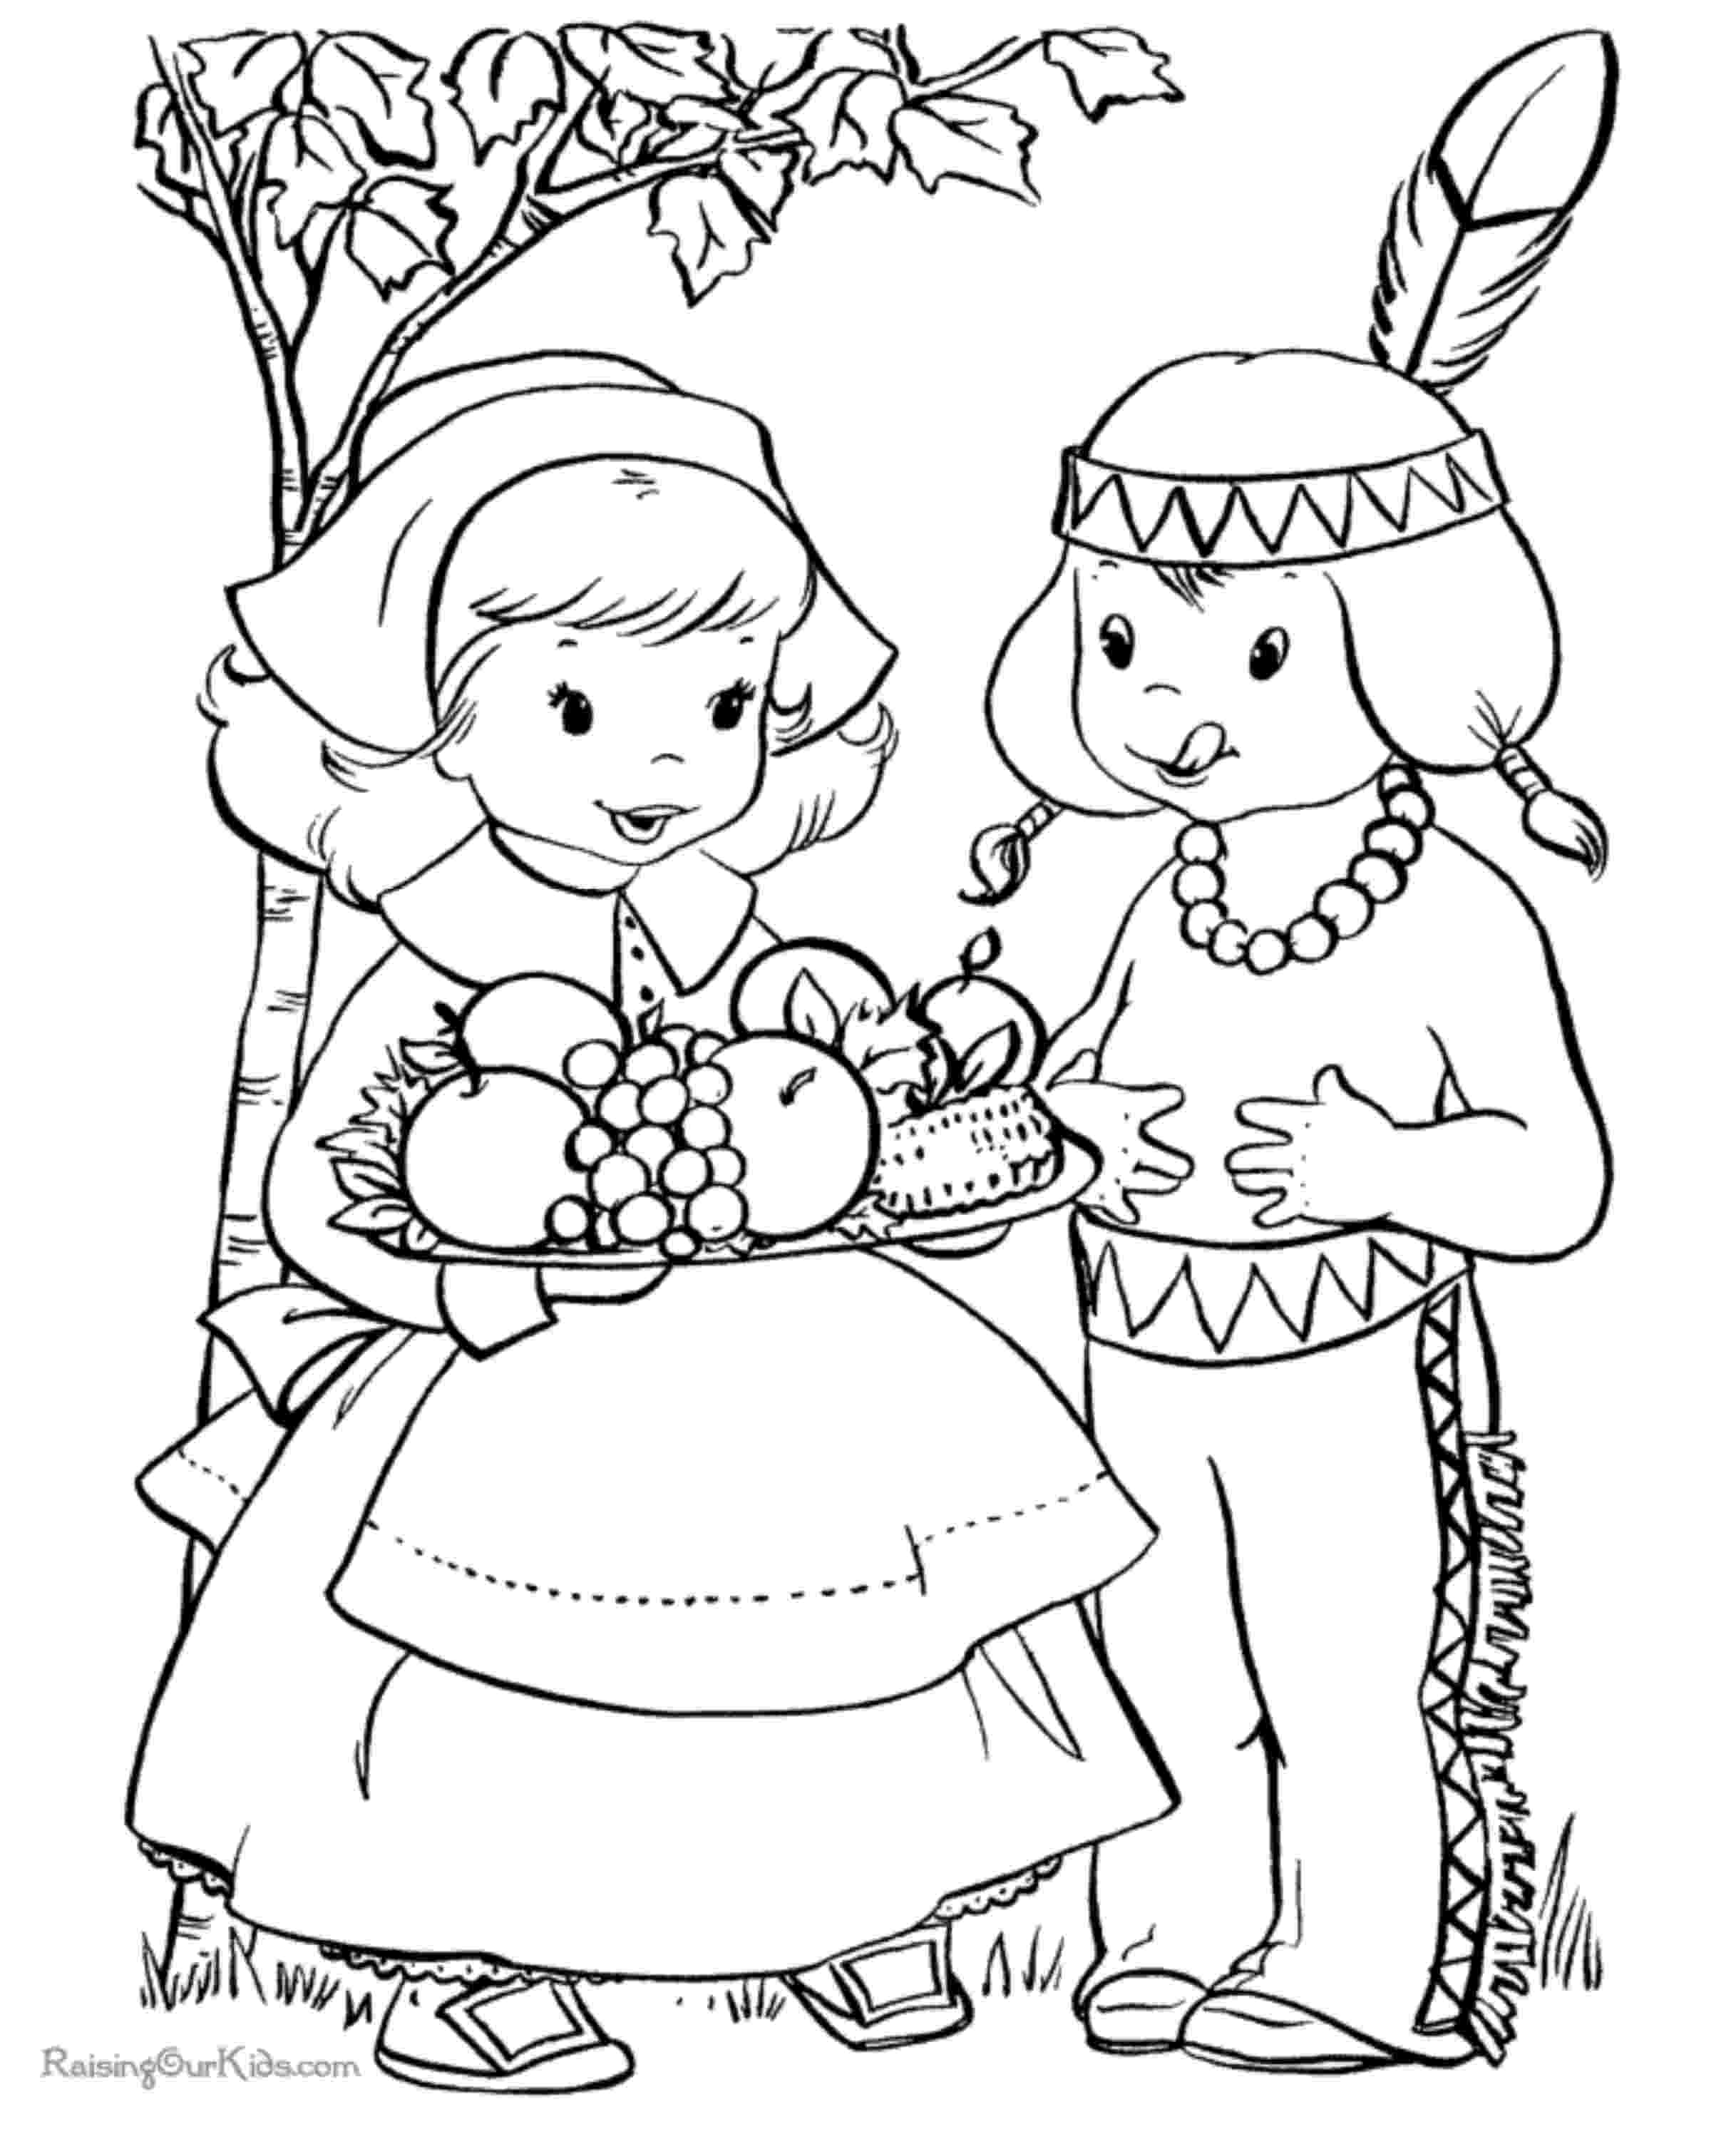 coloring book for thanksgiving thanksgiving northern news coloring for book thanksgiving